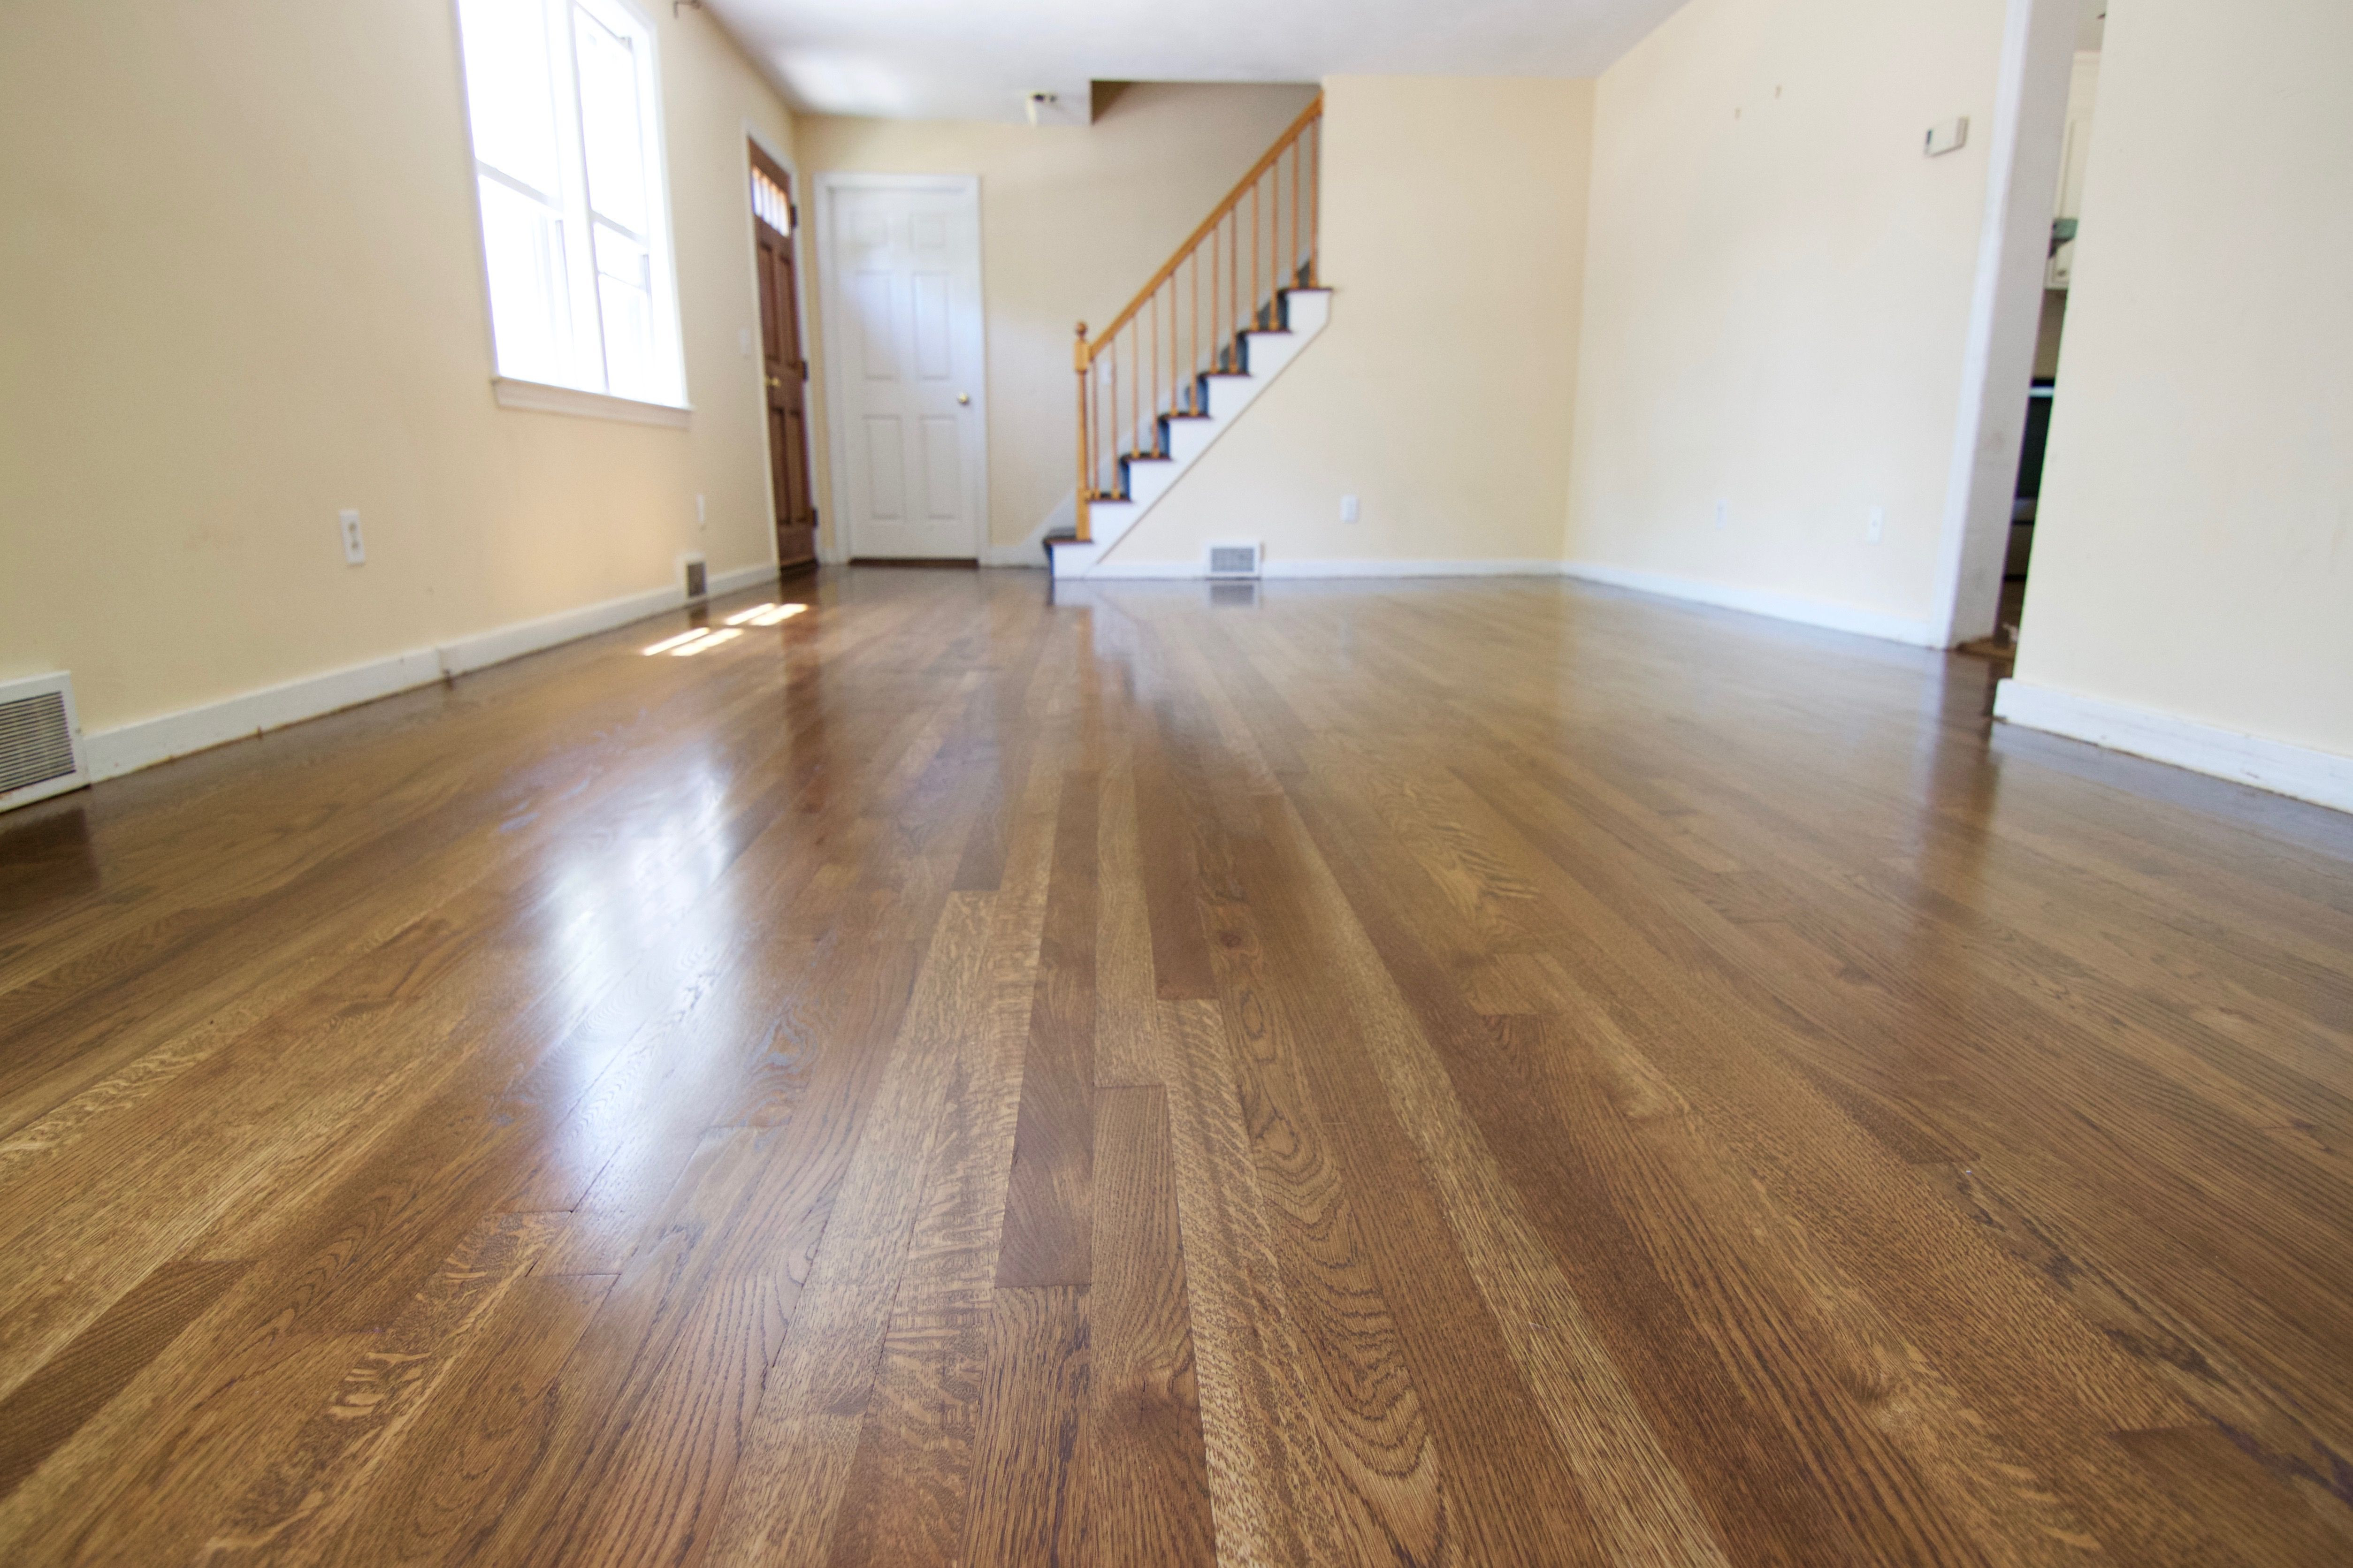 hardwood floor refinishing cost seattle of hardwood floor refinishing richmond va floor transition laminate to with regard to hardwood floor refinishing richmond va white oak hardwood flooring stained with bona medium brown